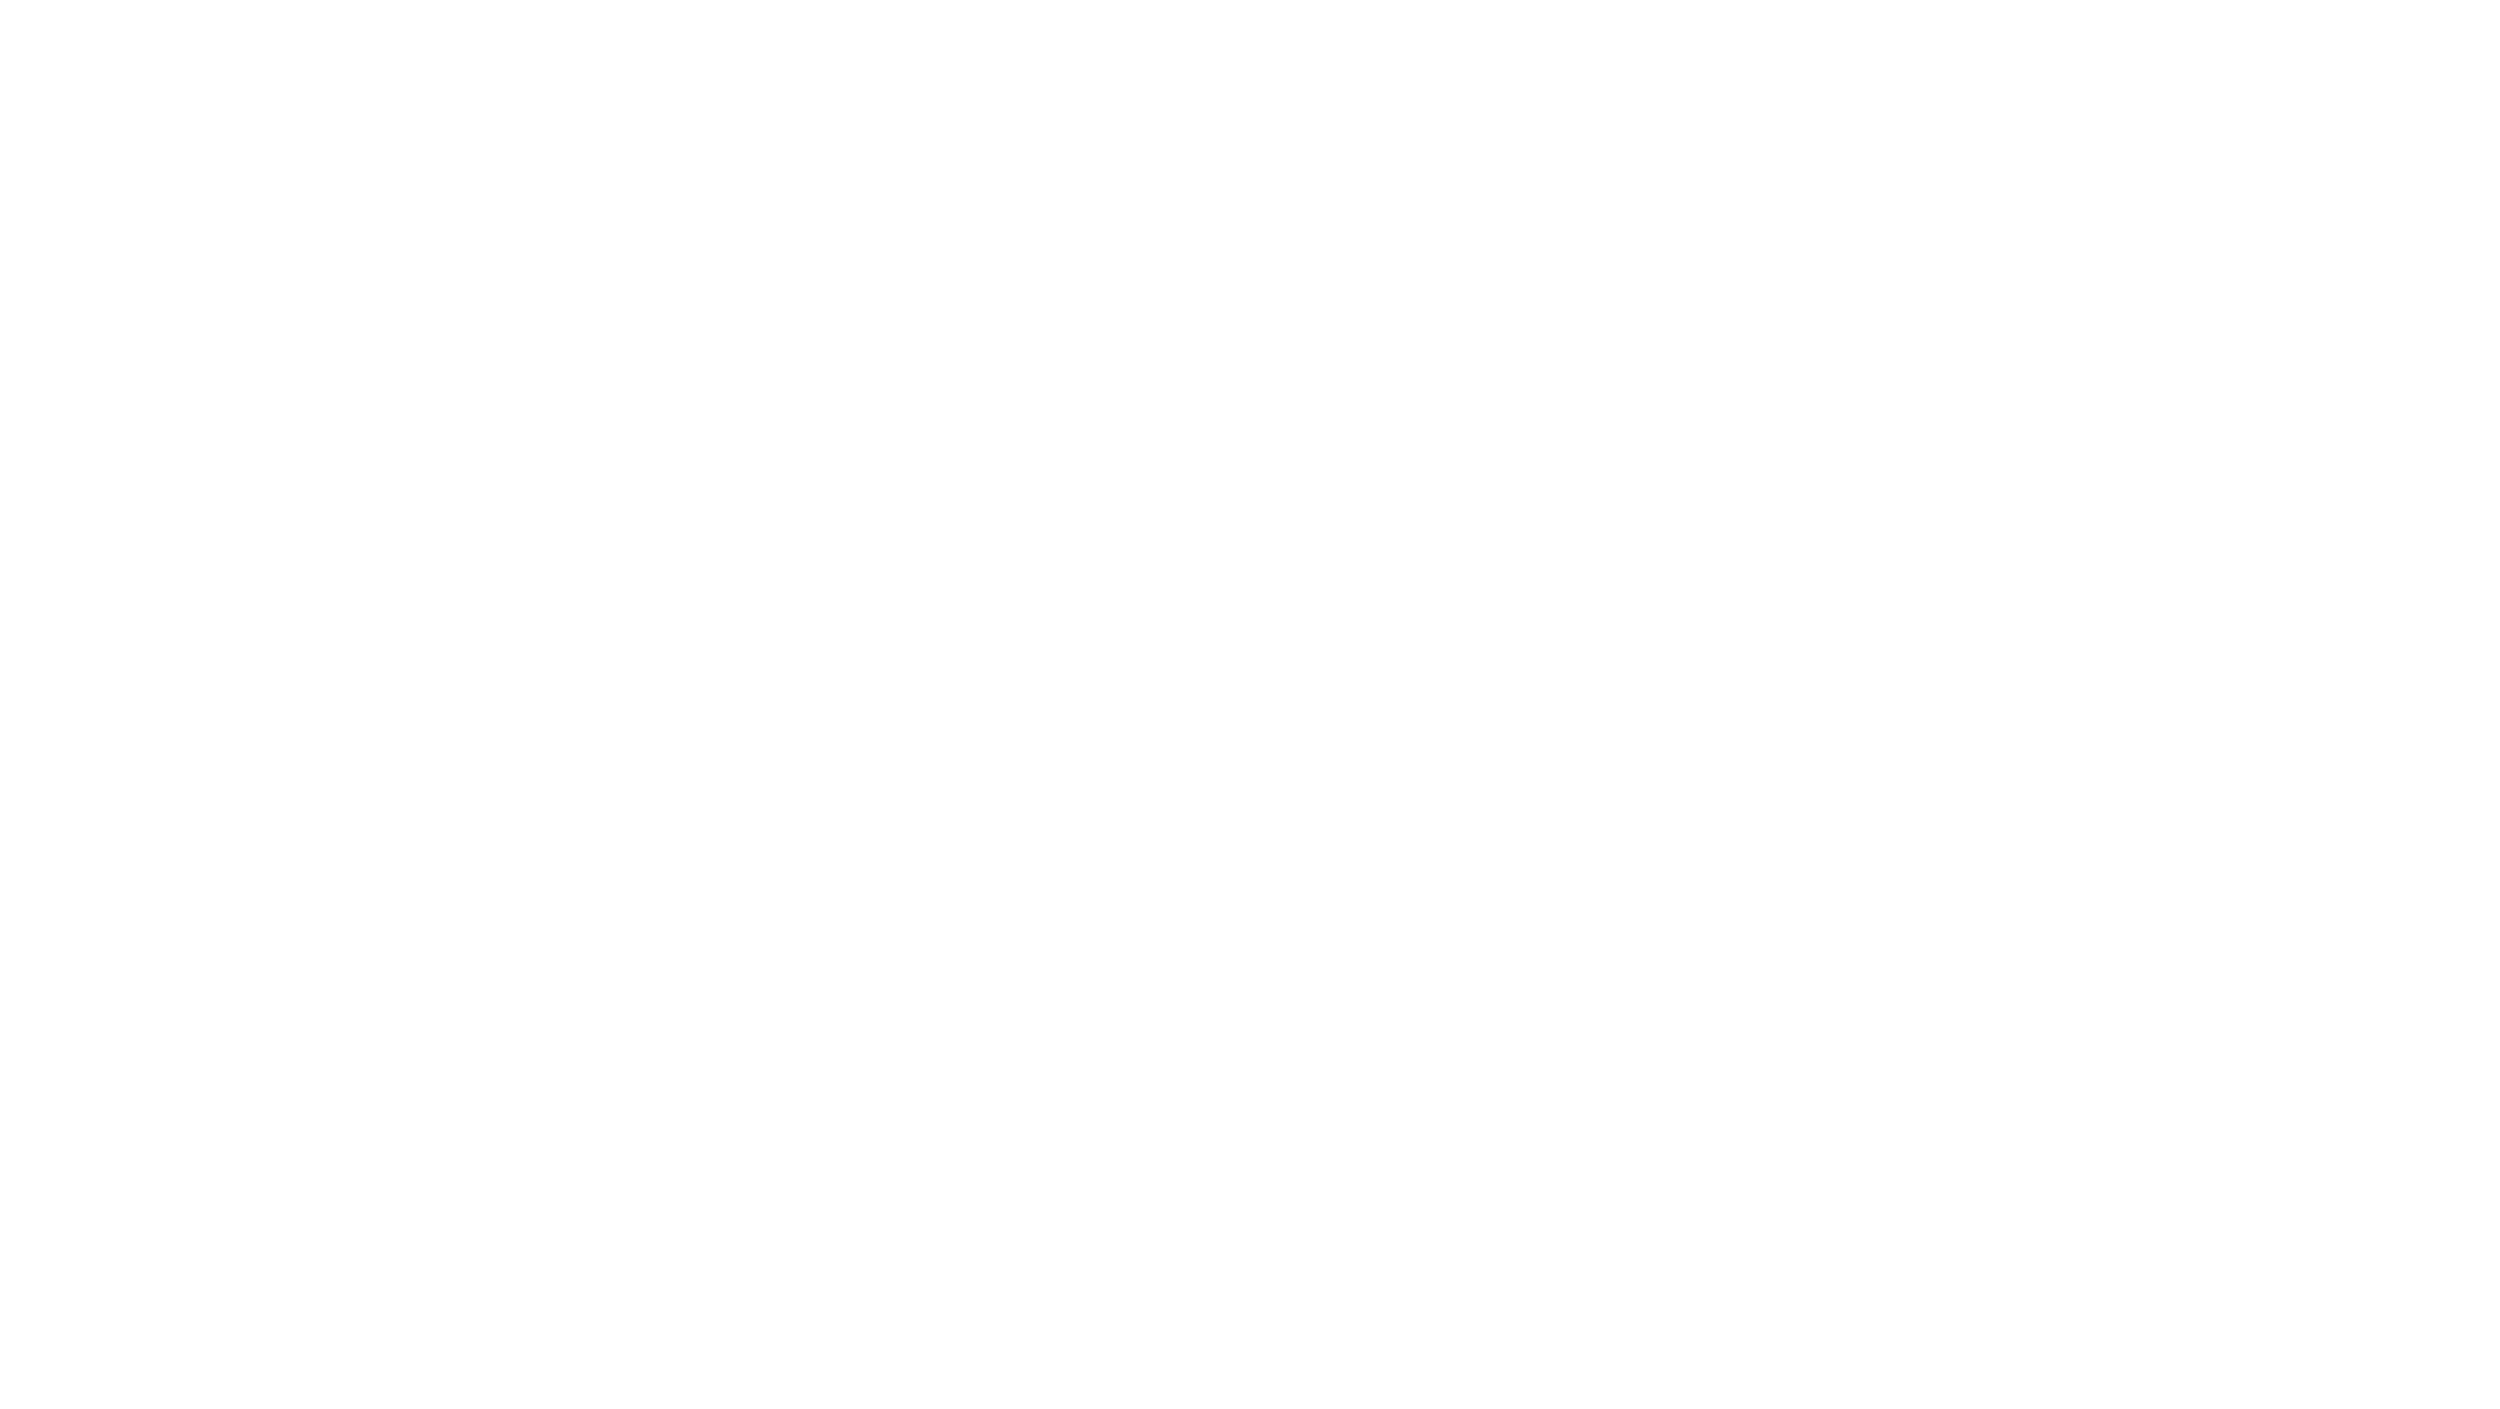 NWI_opportunity_text-03.png